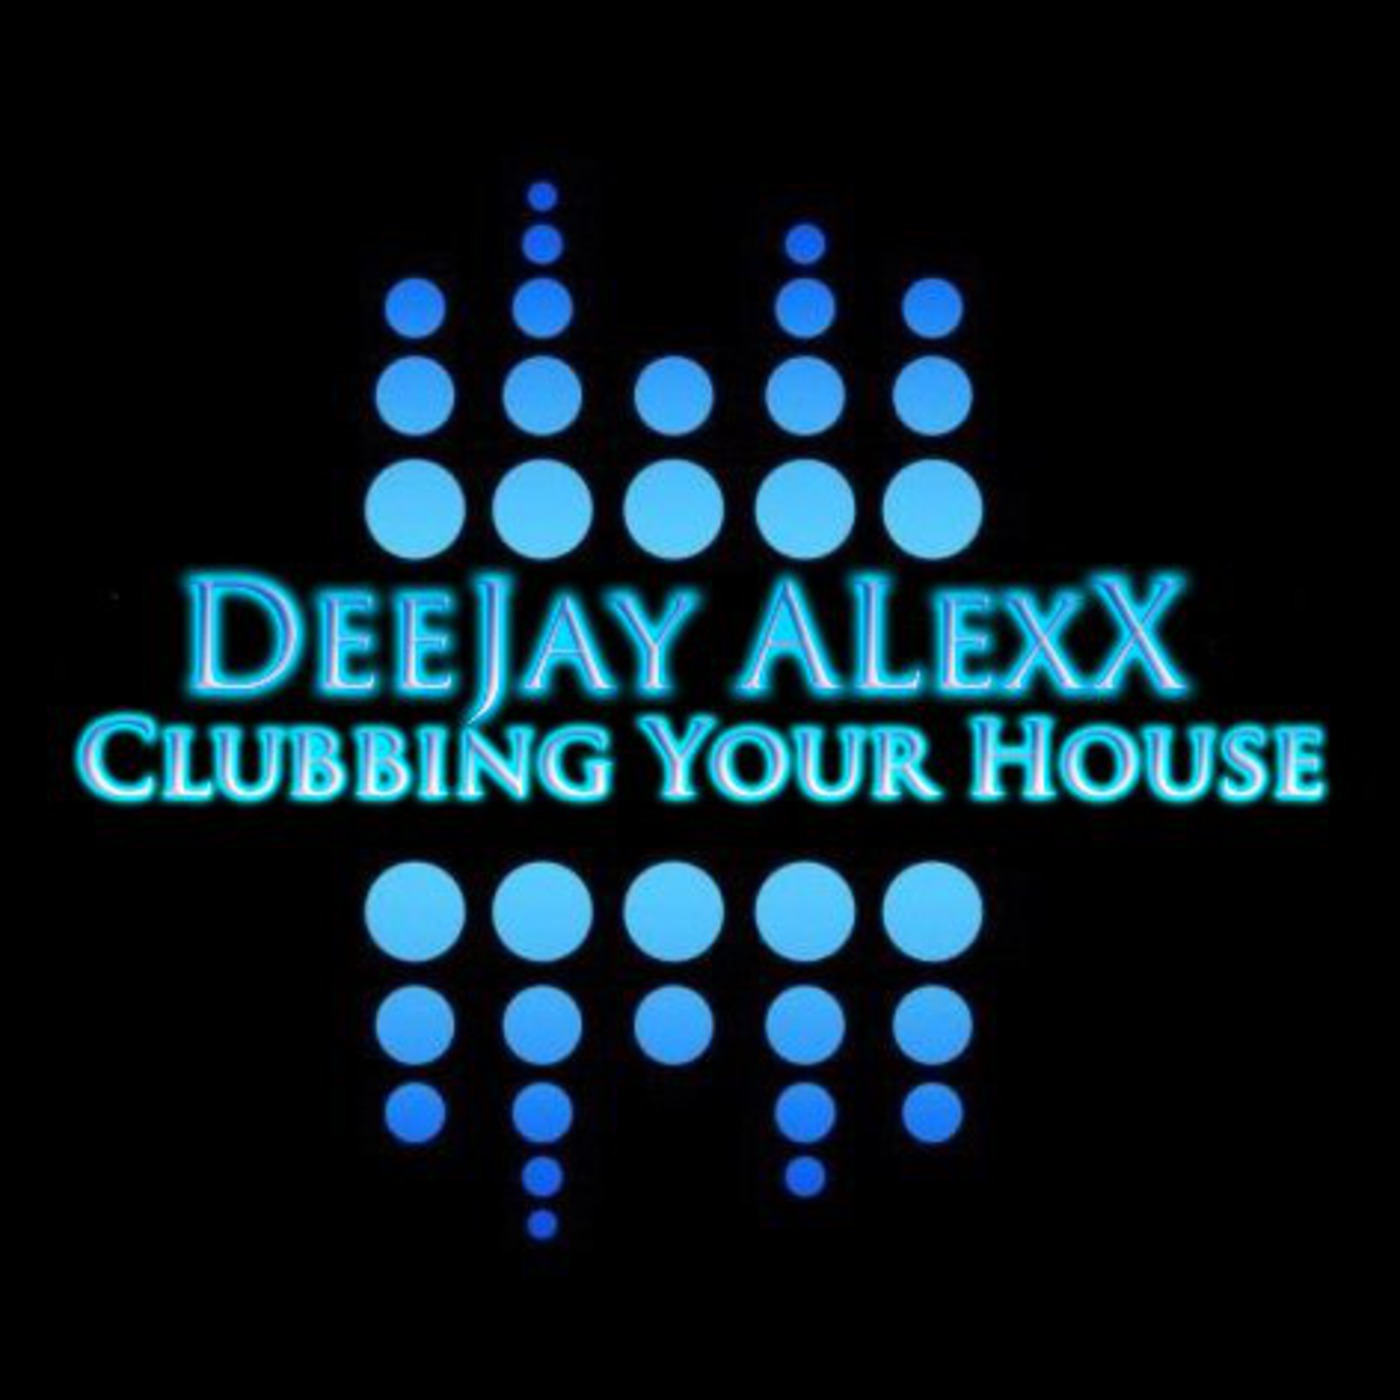 DeeJay ALexX - Clubbing Your House